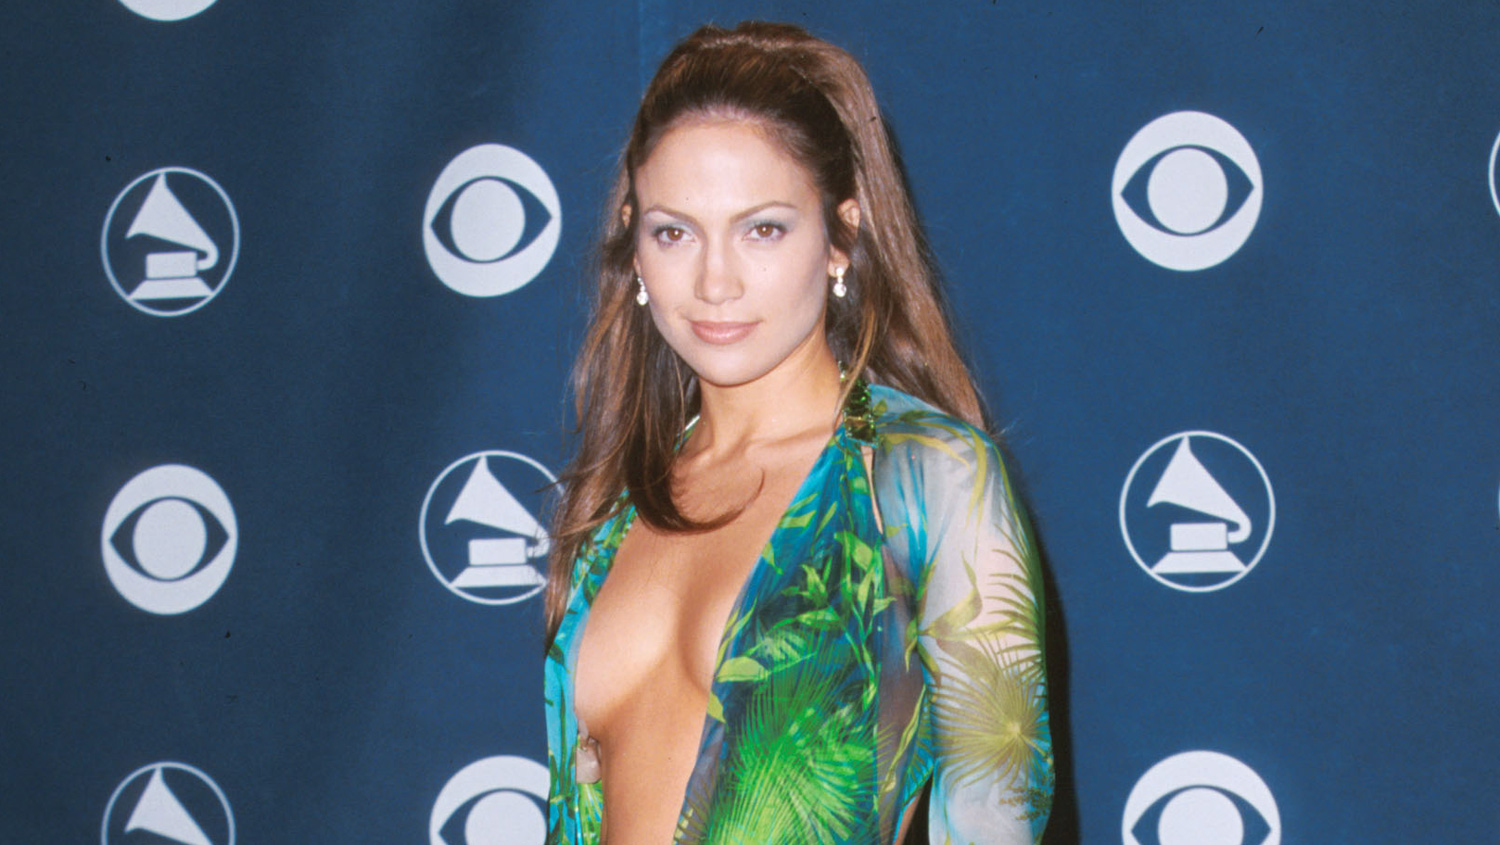 Jennifer Lopez S Iconic Grammys 2000 Dress Inspired Google